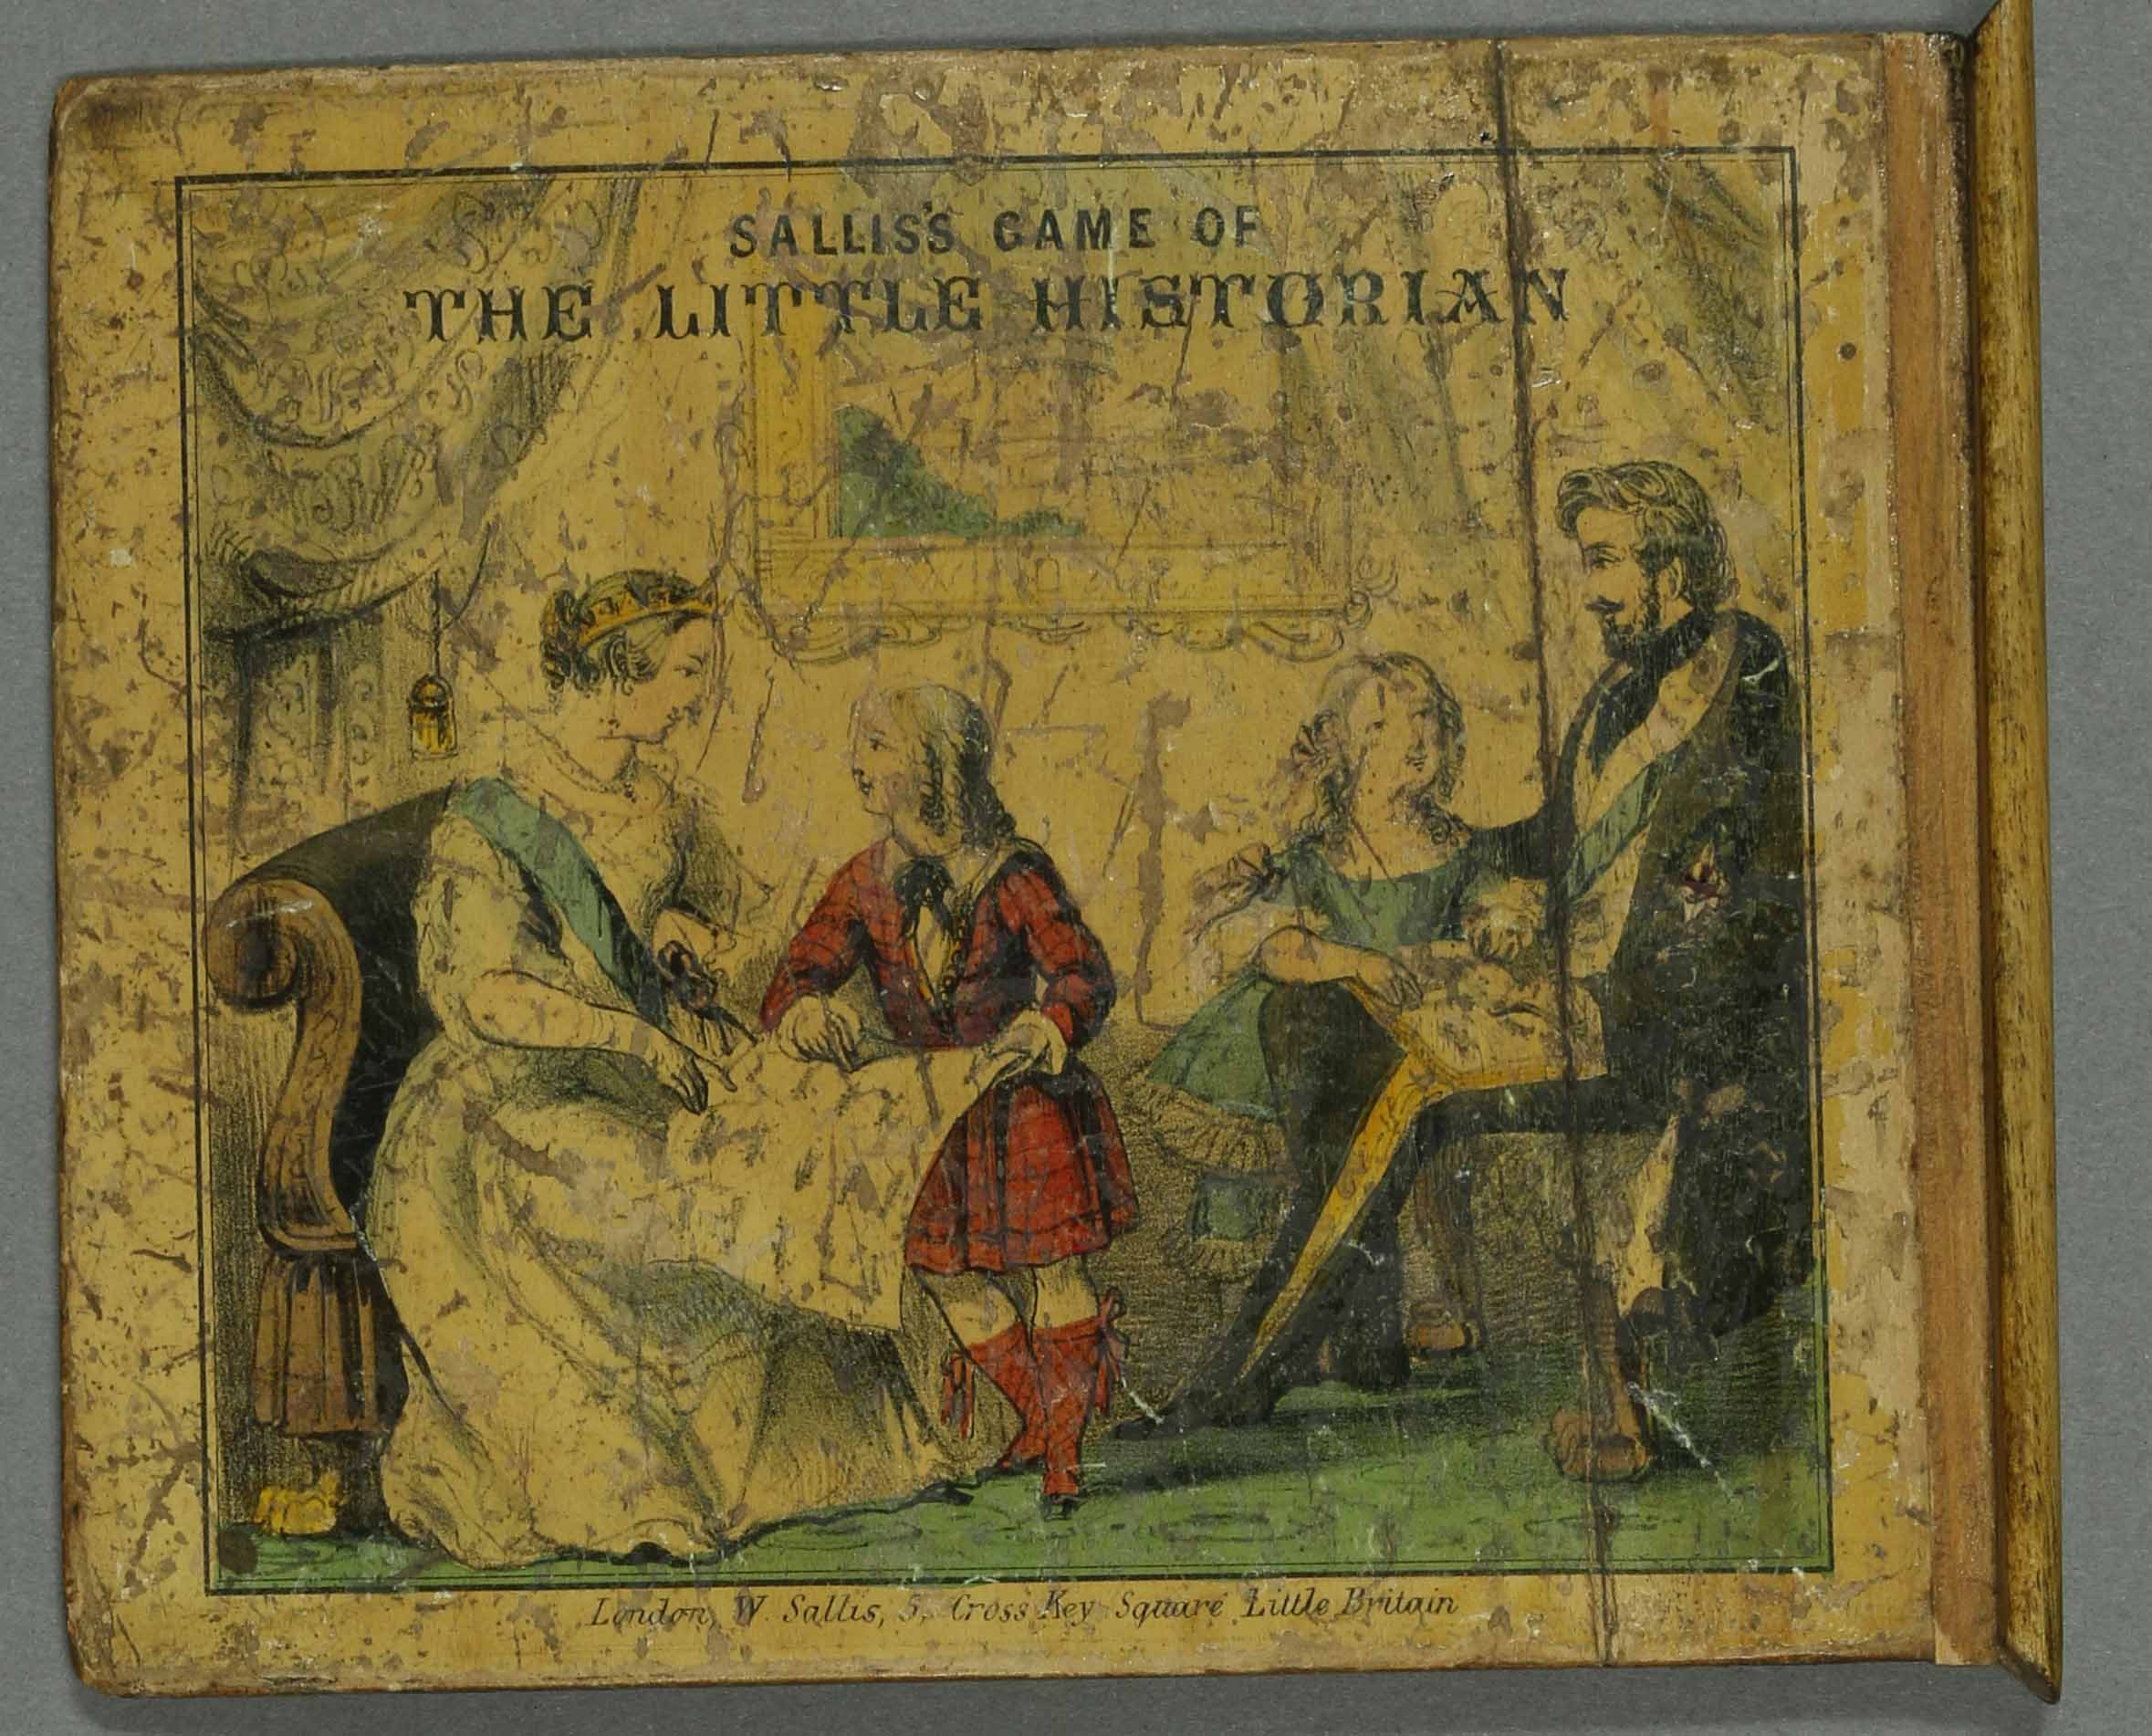 Box lid of The Little Historian, showing Queen Victoria and Prince Albert playing the game with their children